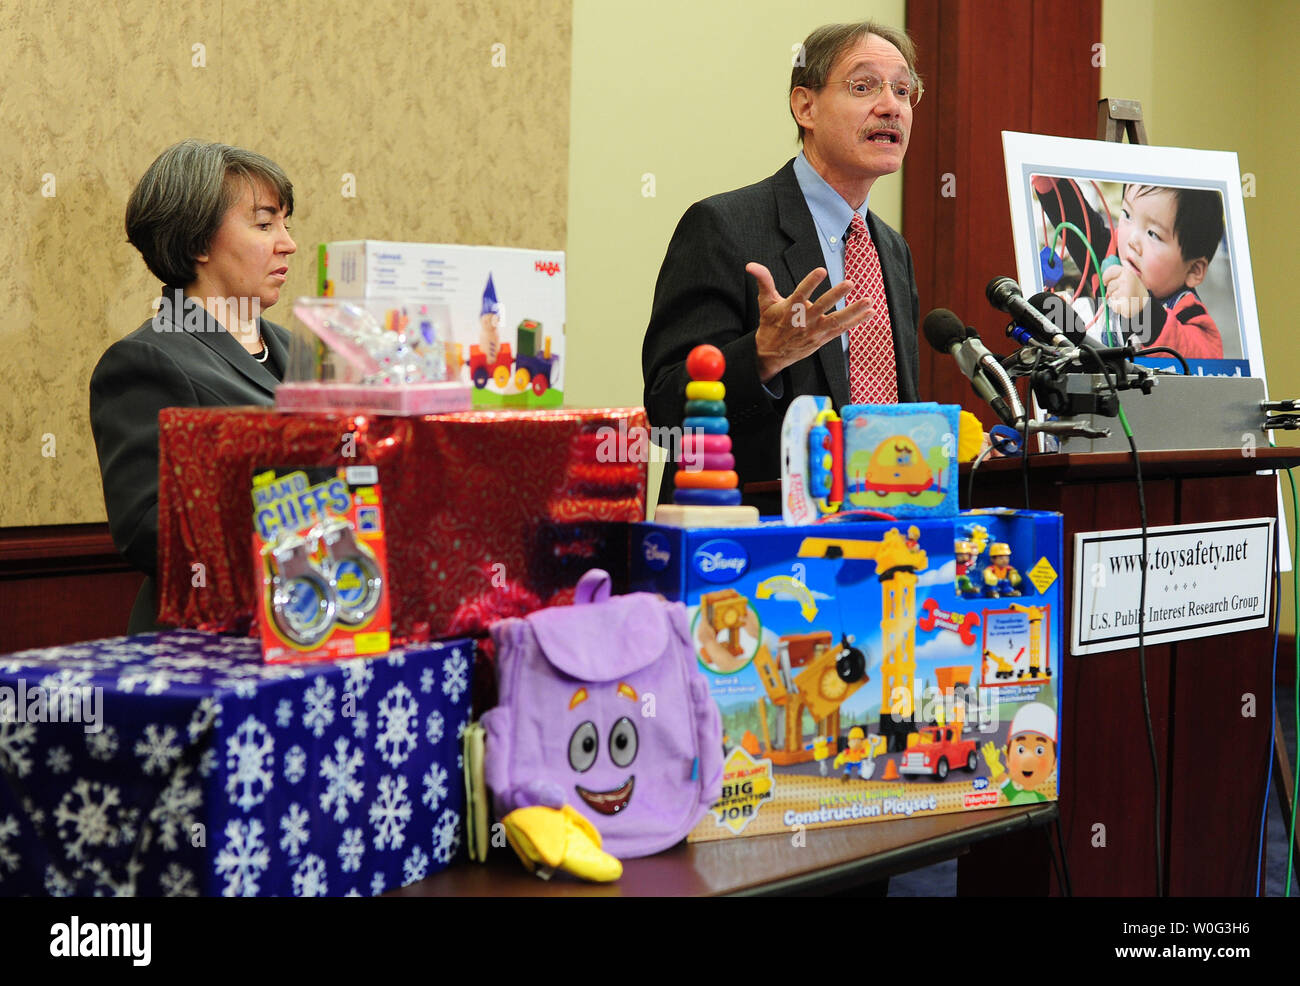 U.S. Consumer Product Safety Commissioner Robert Adler speaks during a news conference at which U.S. Public Interest Research Group (PIRG) announced its 25th annual Trouble in Toyland report, in Washington November 23, 2010. The report details test results for toxic chemicals in toys and calls to expand the small parts standard to prevent choking hazards. Abler was joined by U.S. PIRG Public Health Advocate Liz Hitchcock.  UPI/Kevin Dietsch Stock Photo